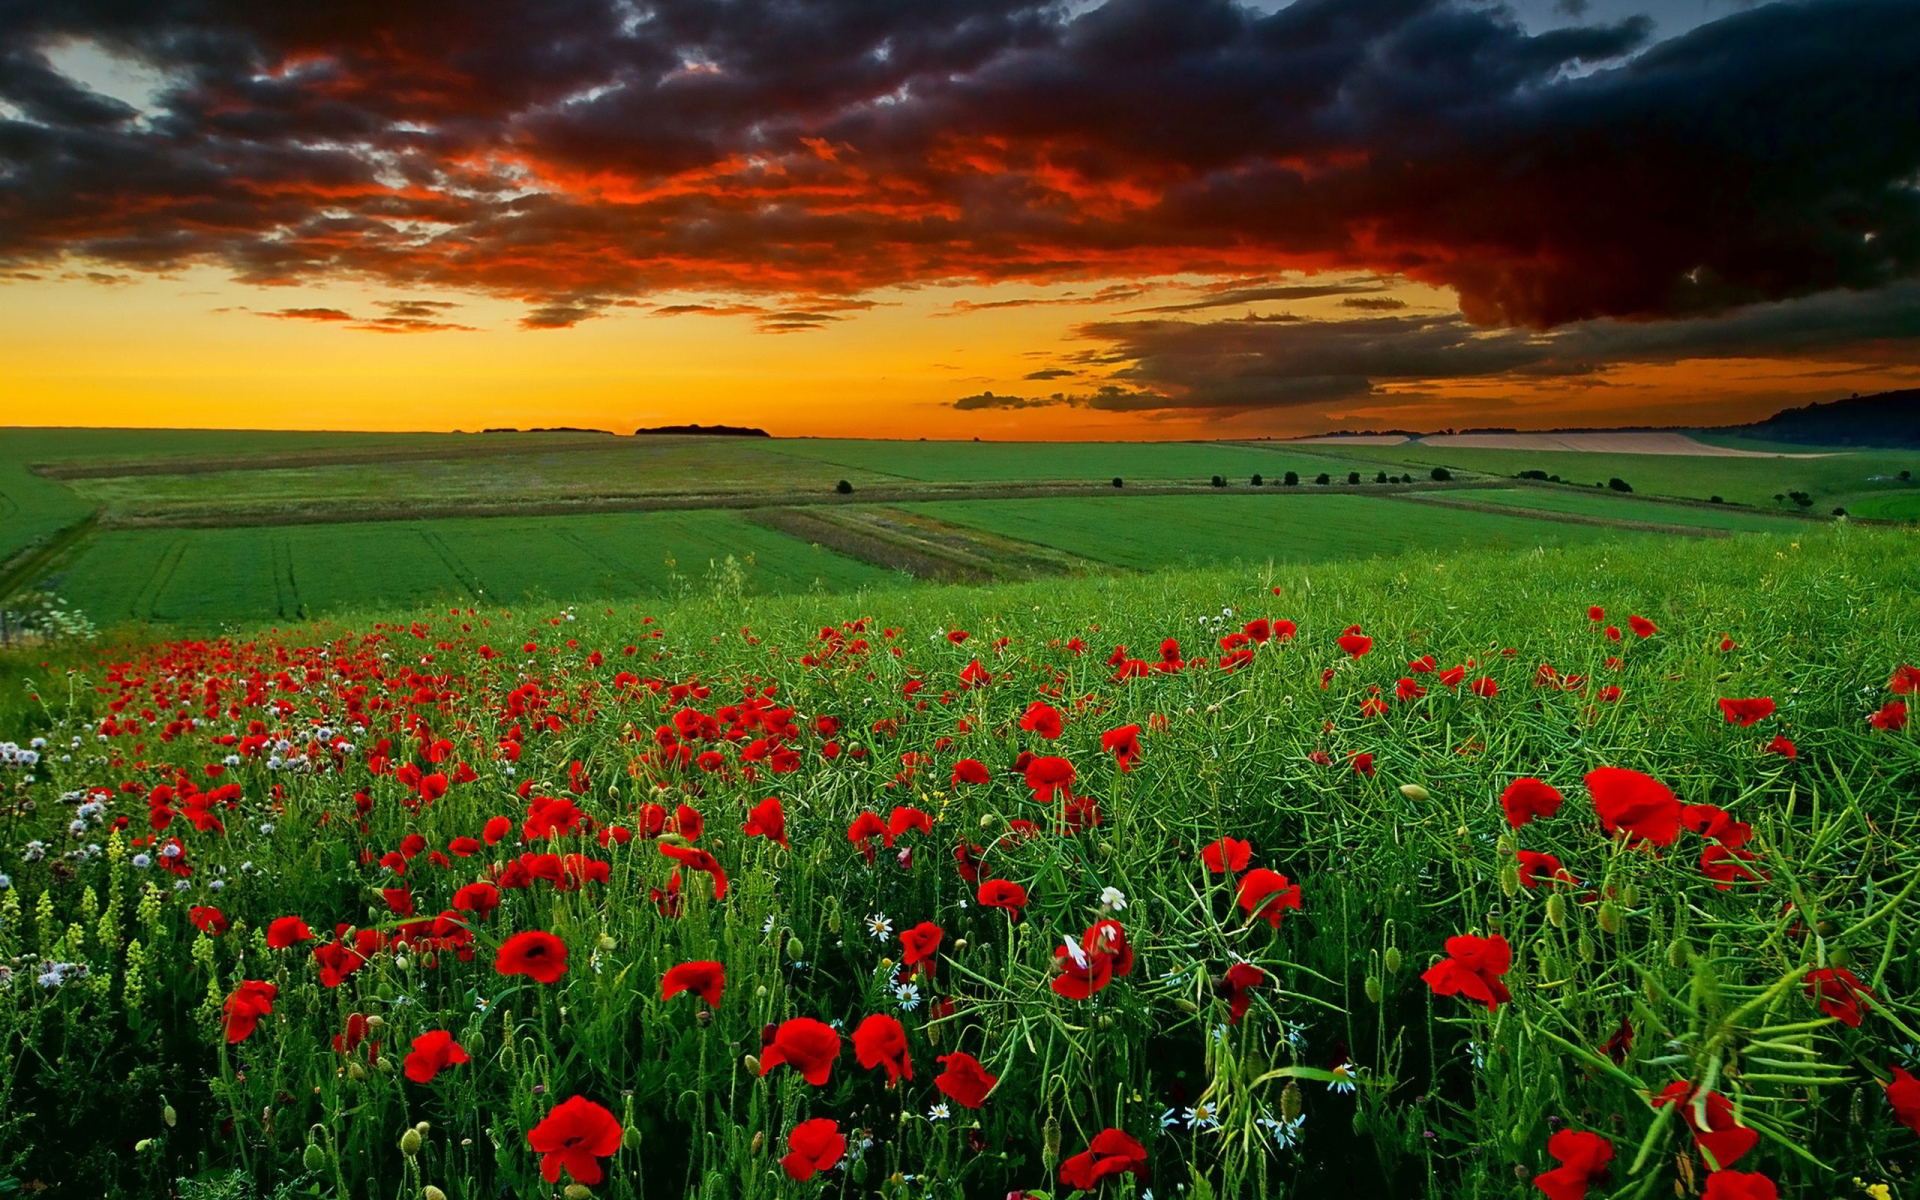 field sunset hd